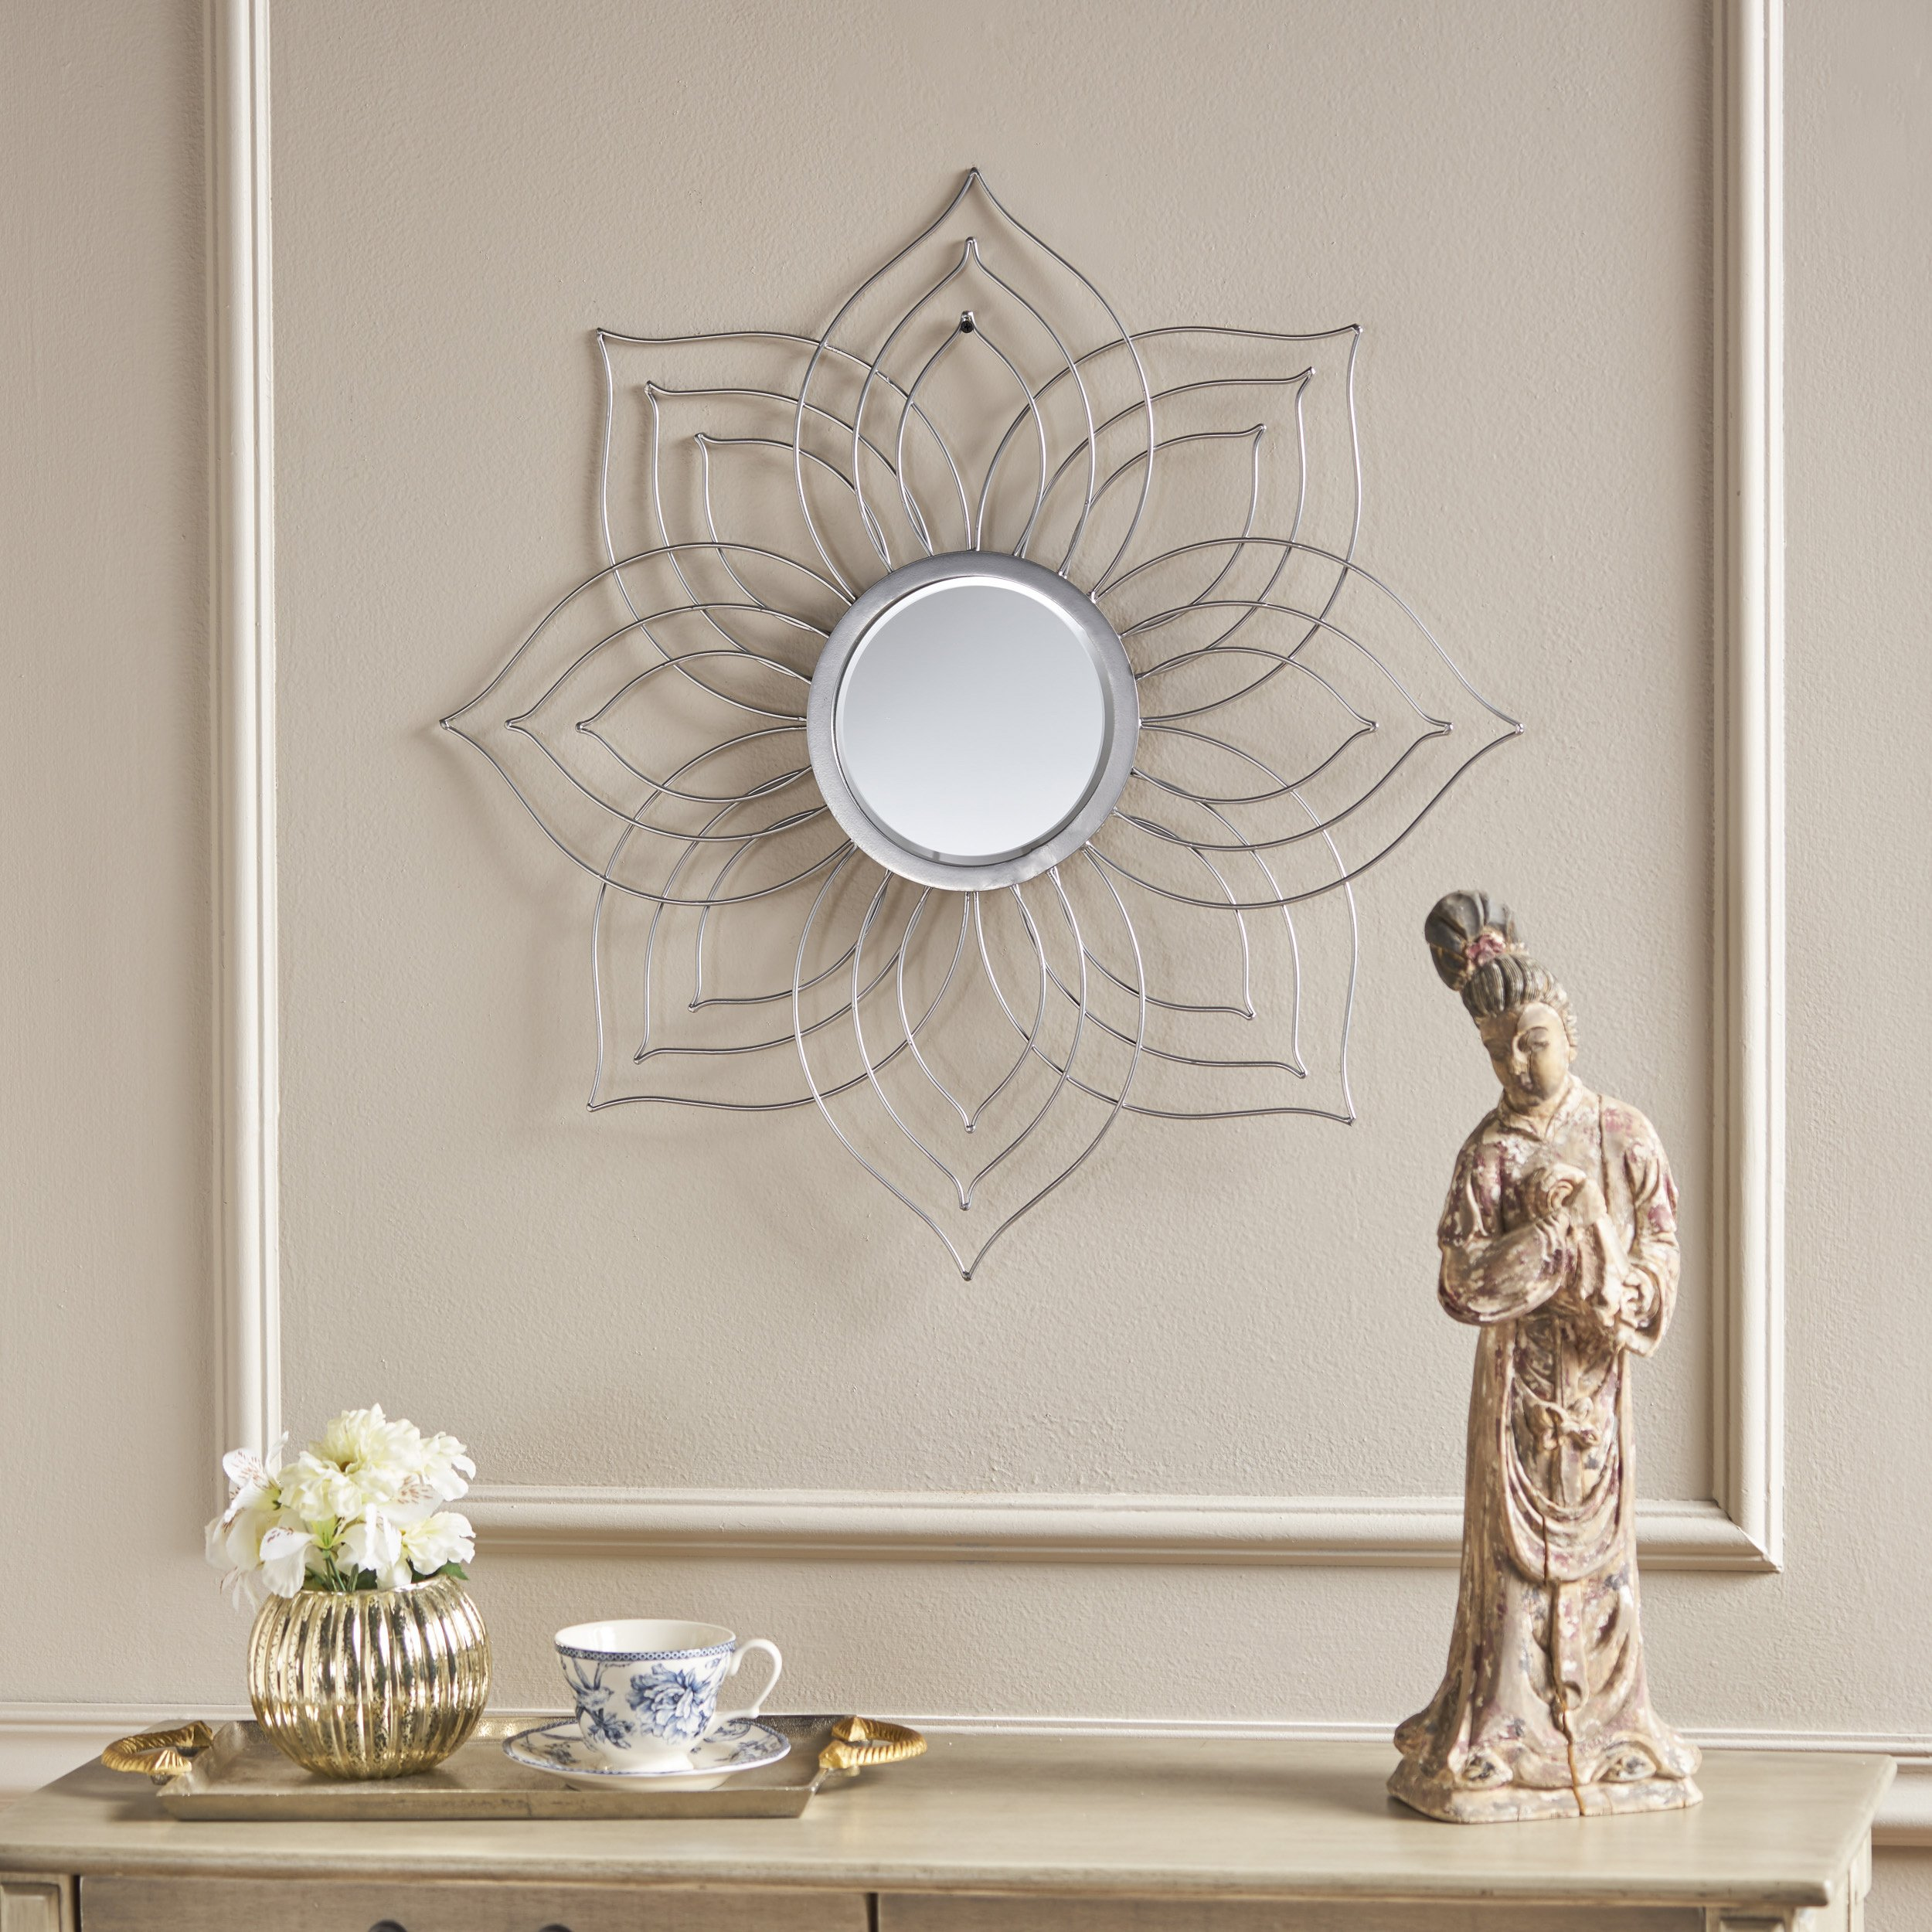 Christopher Knight Home 302089 Oakley Floral Wall Mirror, Silver